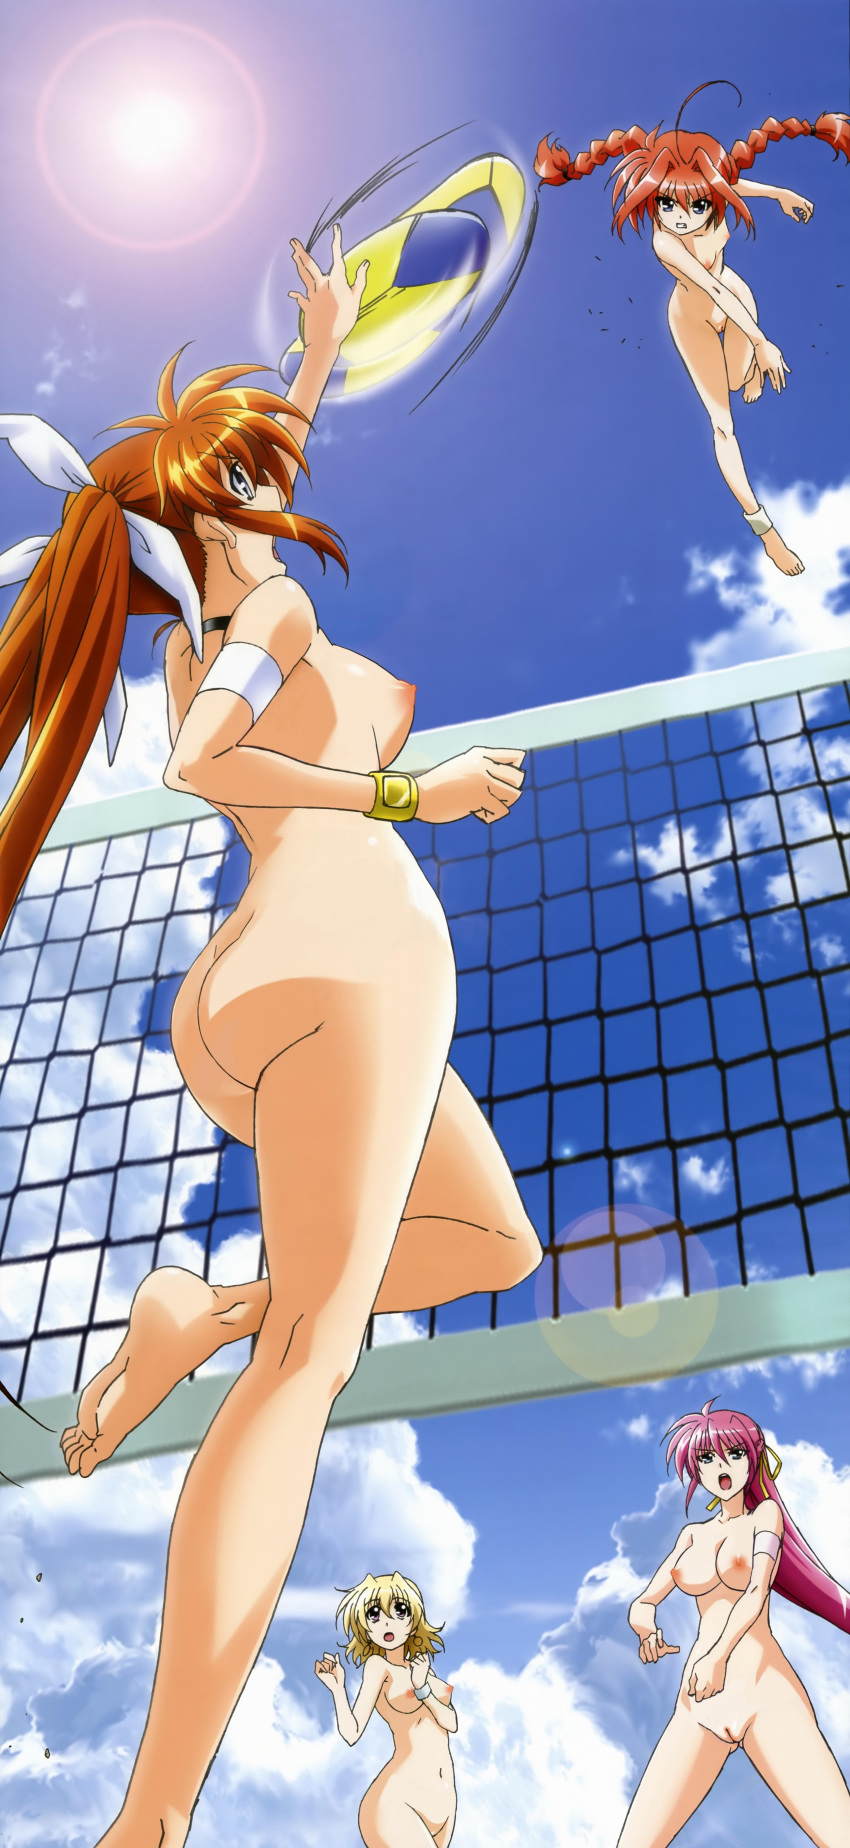 girls nude criminal invite only A certain magical index vento